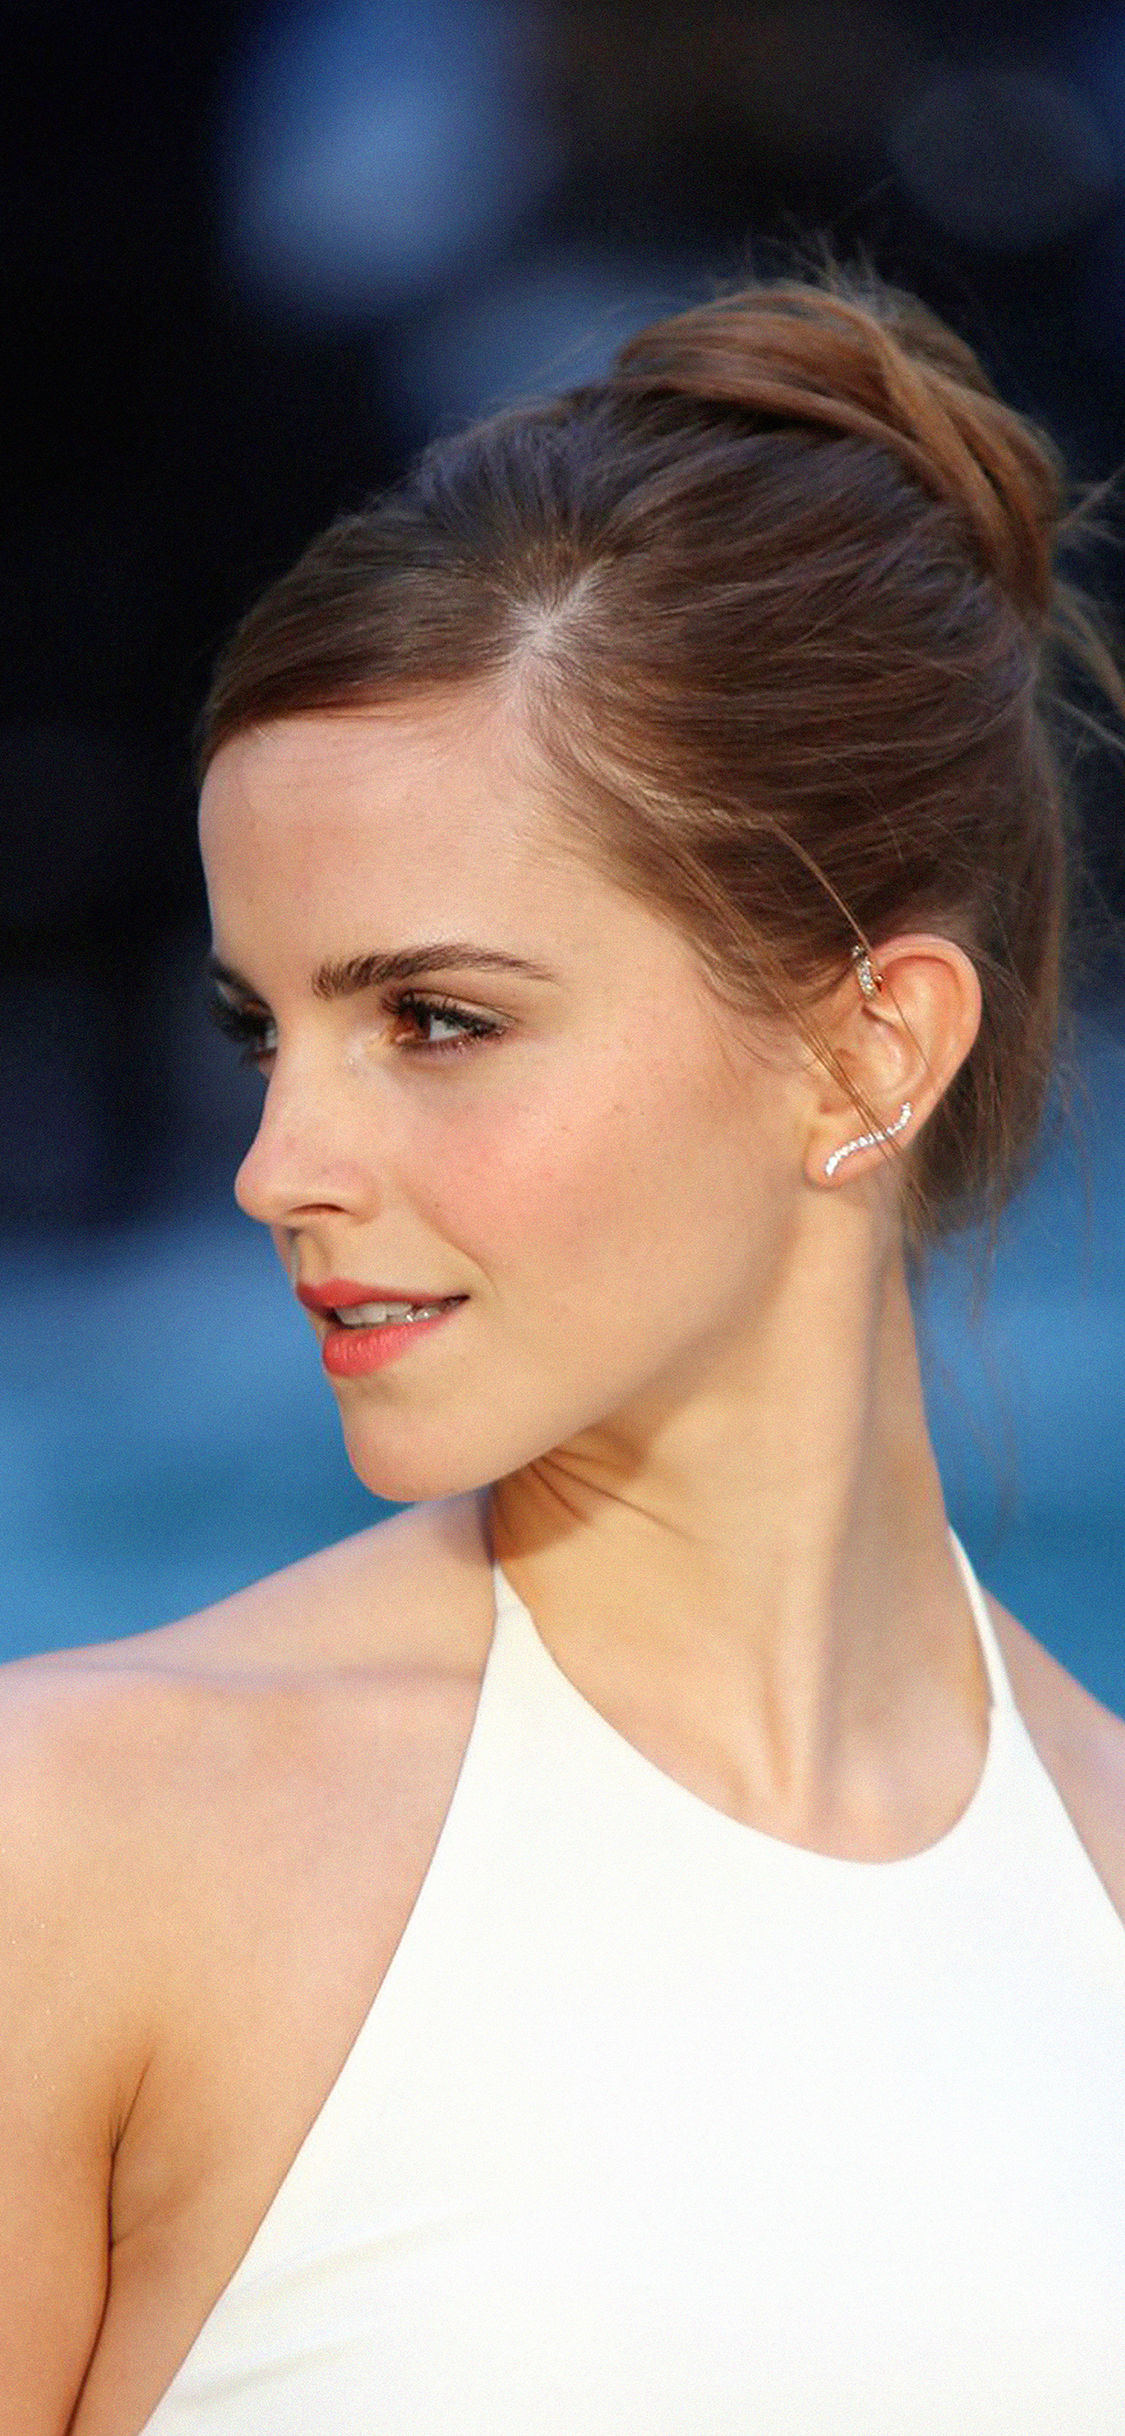 hb93-emma-watson-in-white-dress - Papers.co